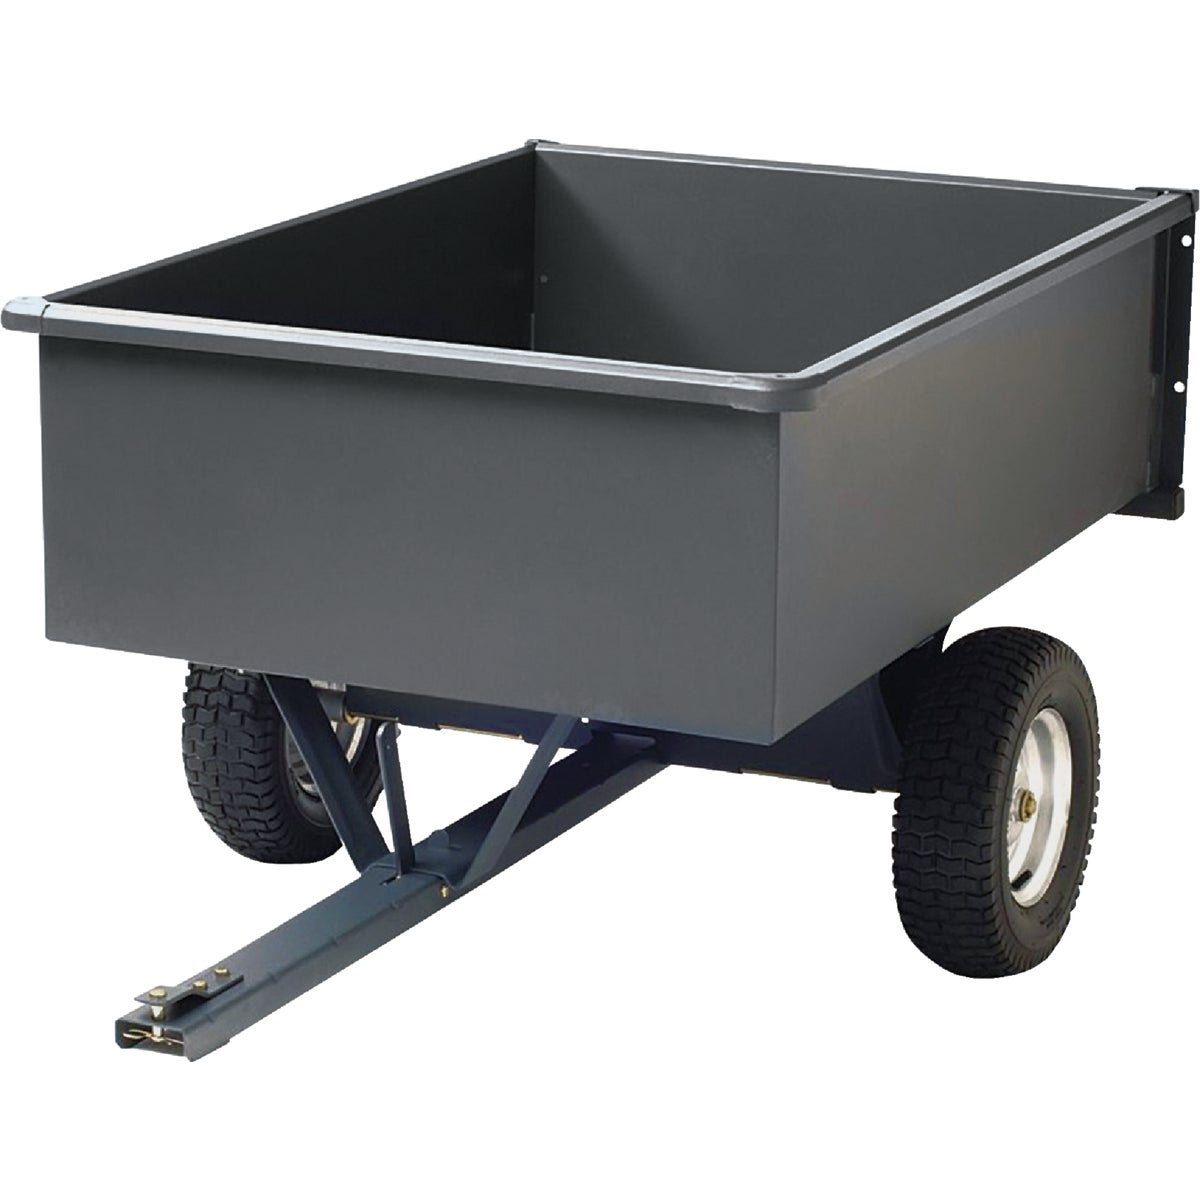 15 CU FT DUMP CART - LC1500GY by Precision Prod Inc